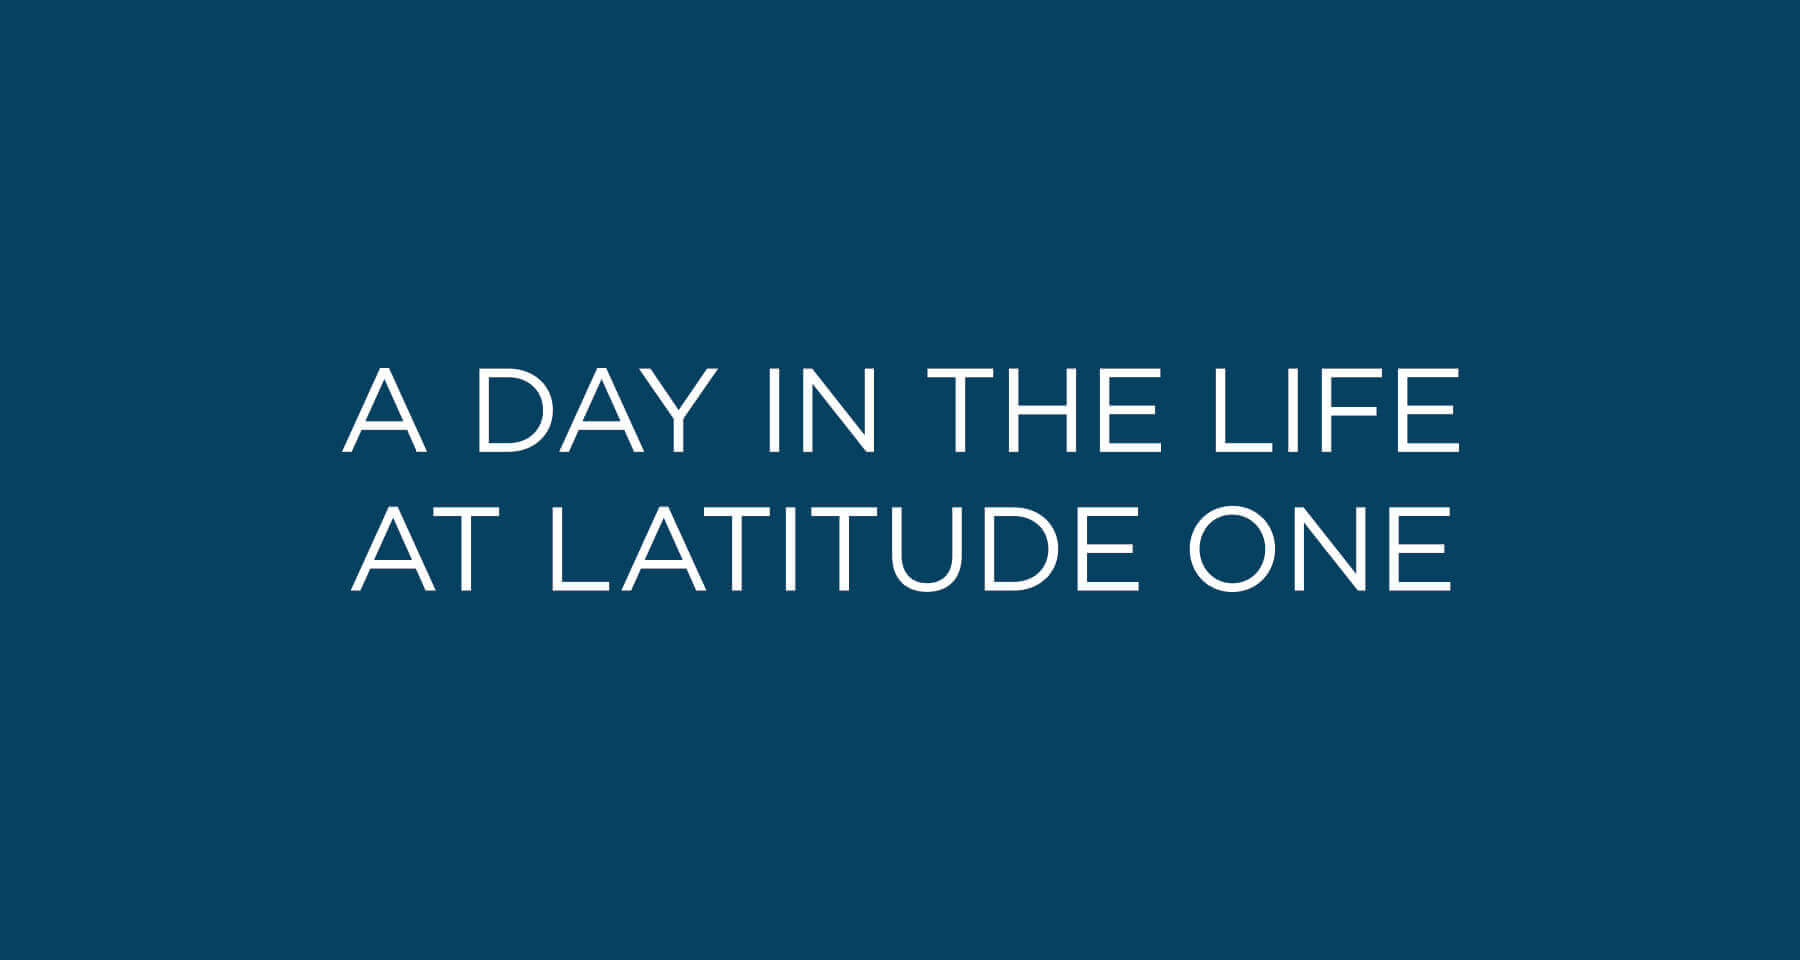 a day in the life at Latitude One